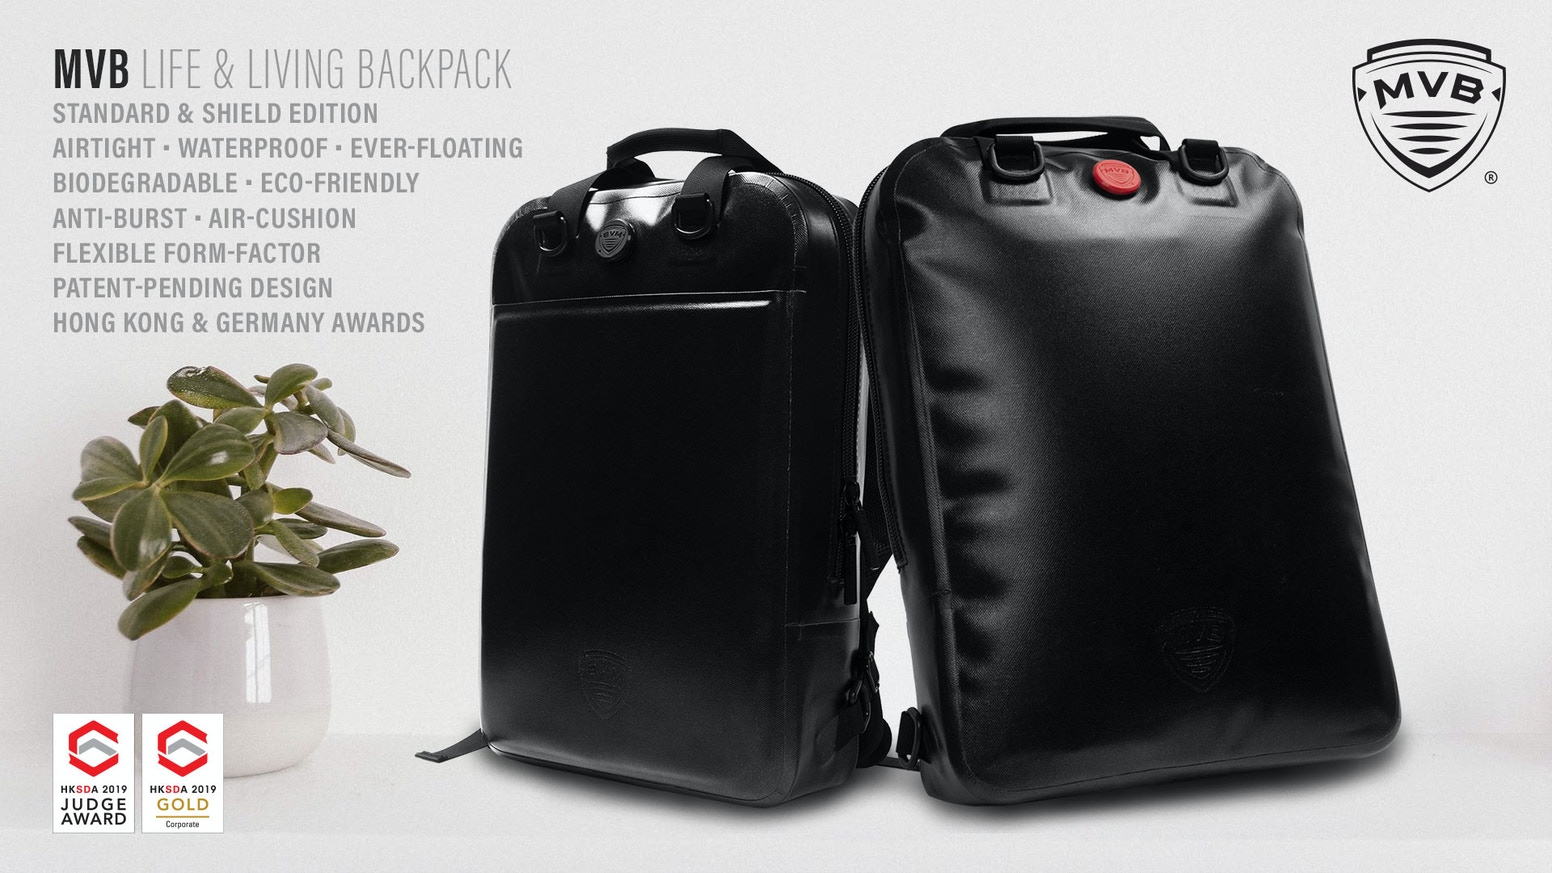 MVB Floatotepack - the extraordinary waterproof totepack, all-round protection for you and your belongings, floats on water, go-anywhere, fits any style.